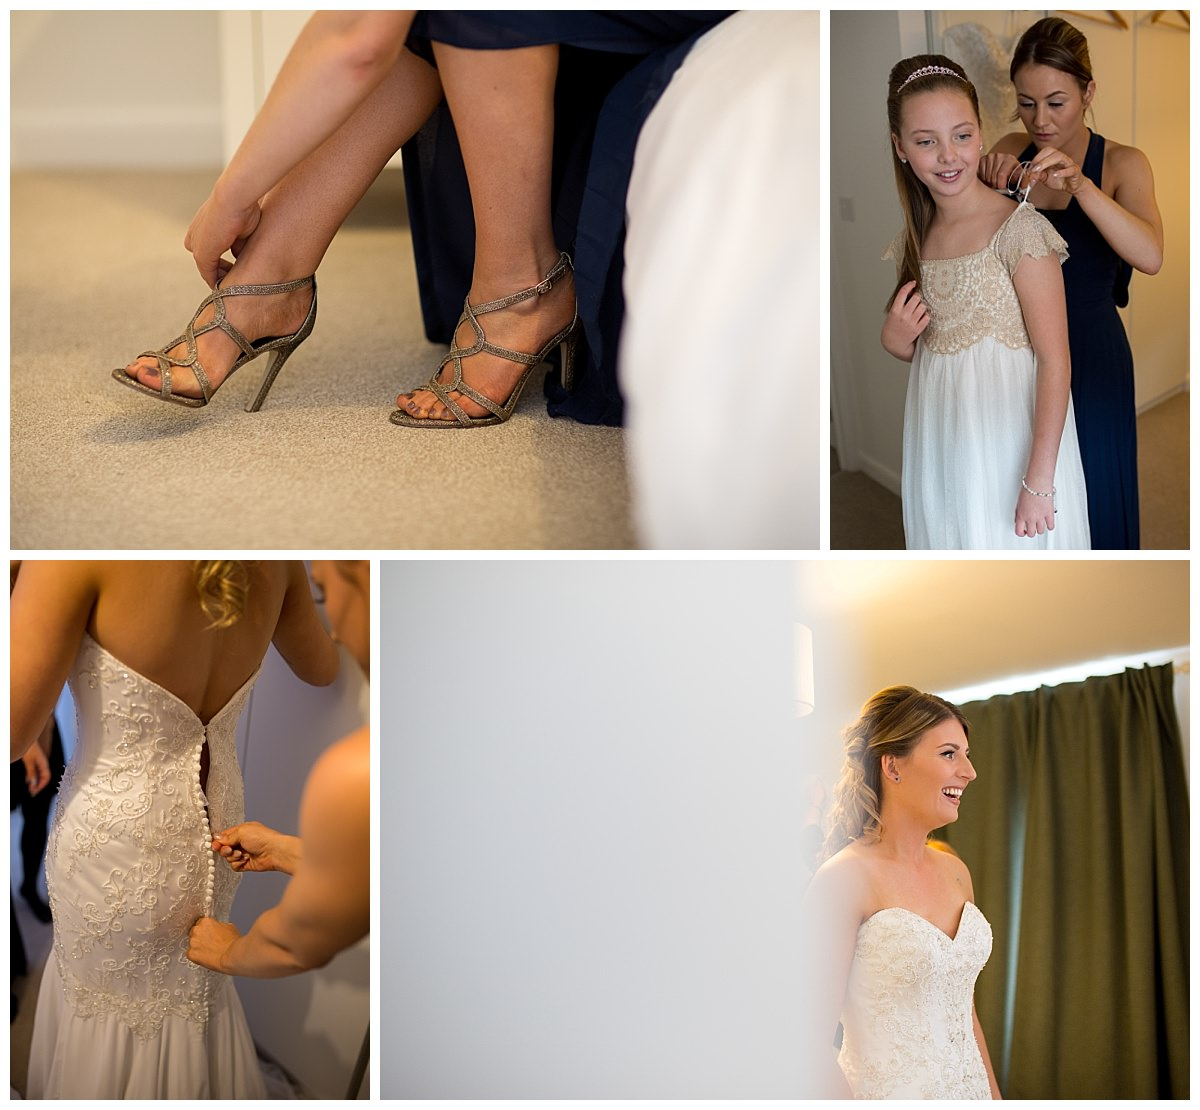 Bride getting in her dress